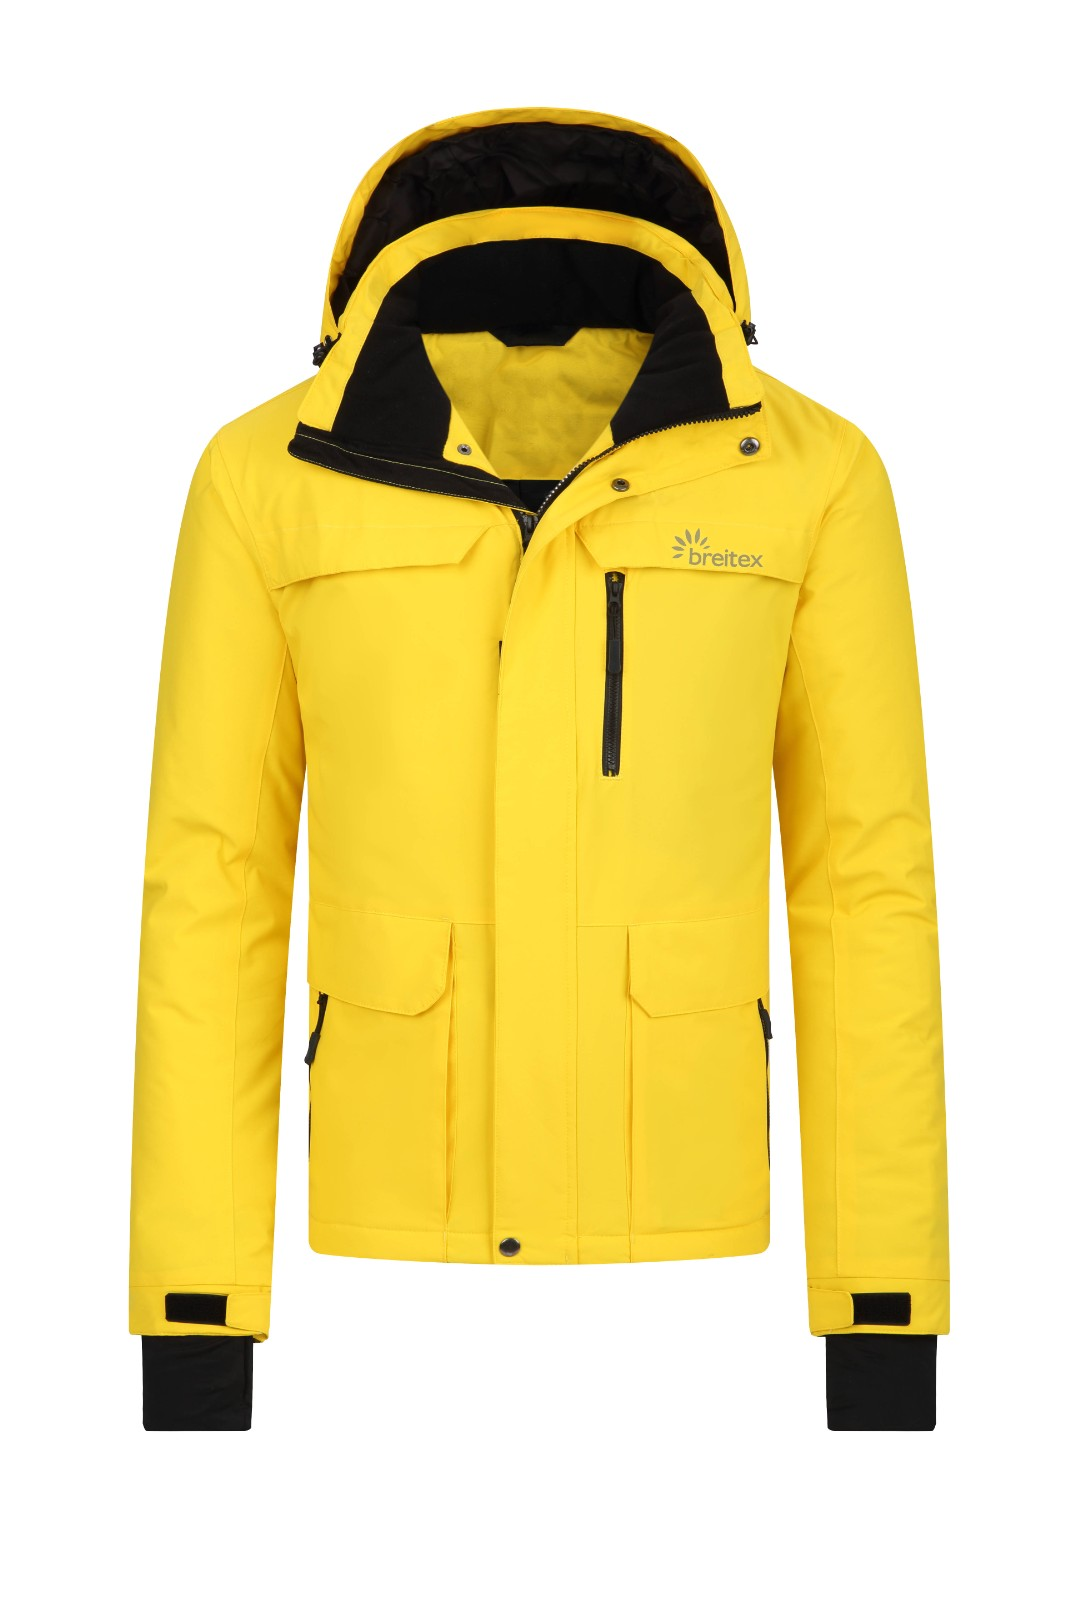 news-The Brightest New Jackets For Spring 2021-Breitex -img